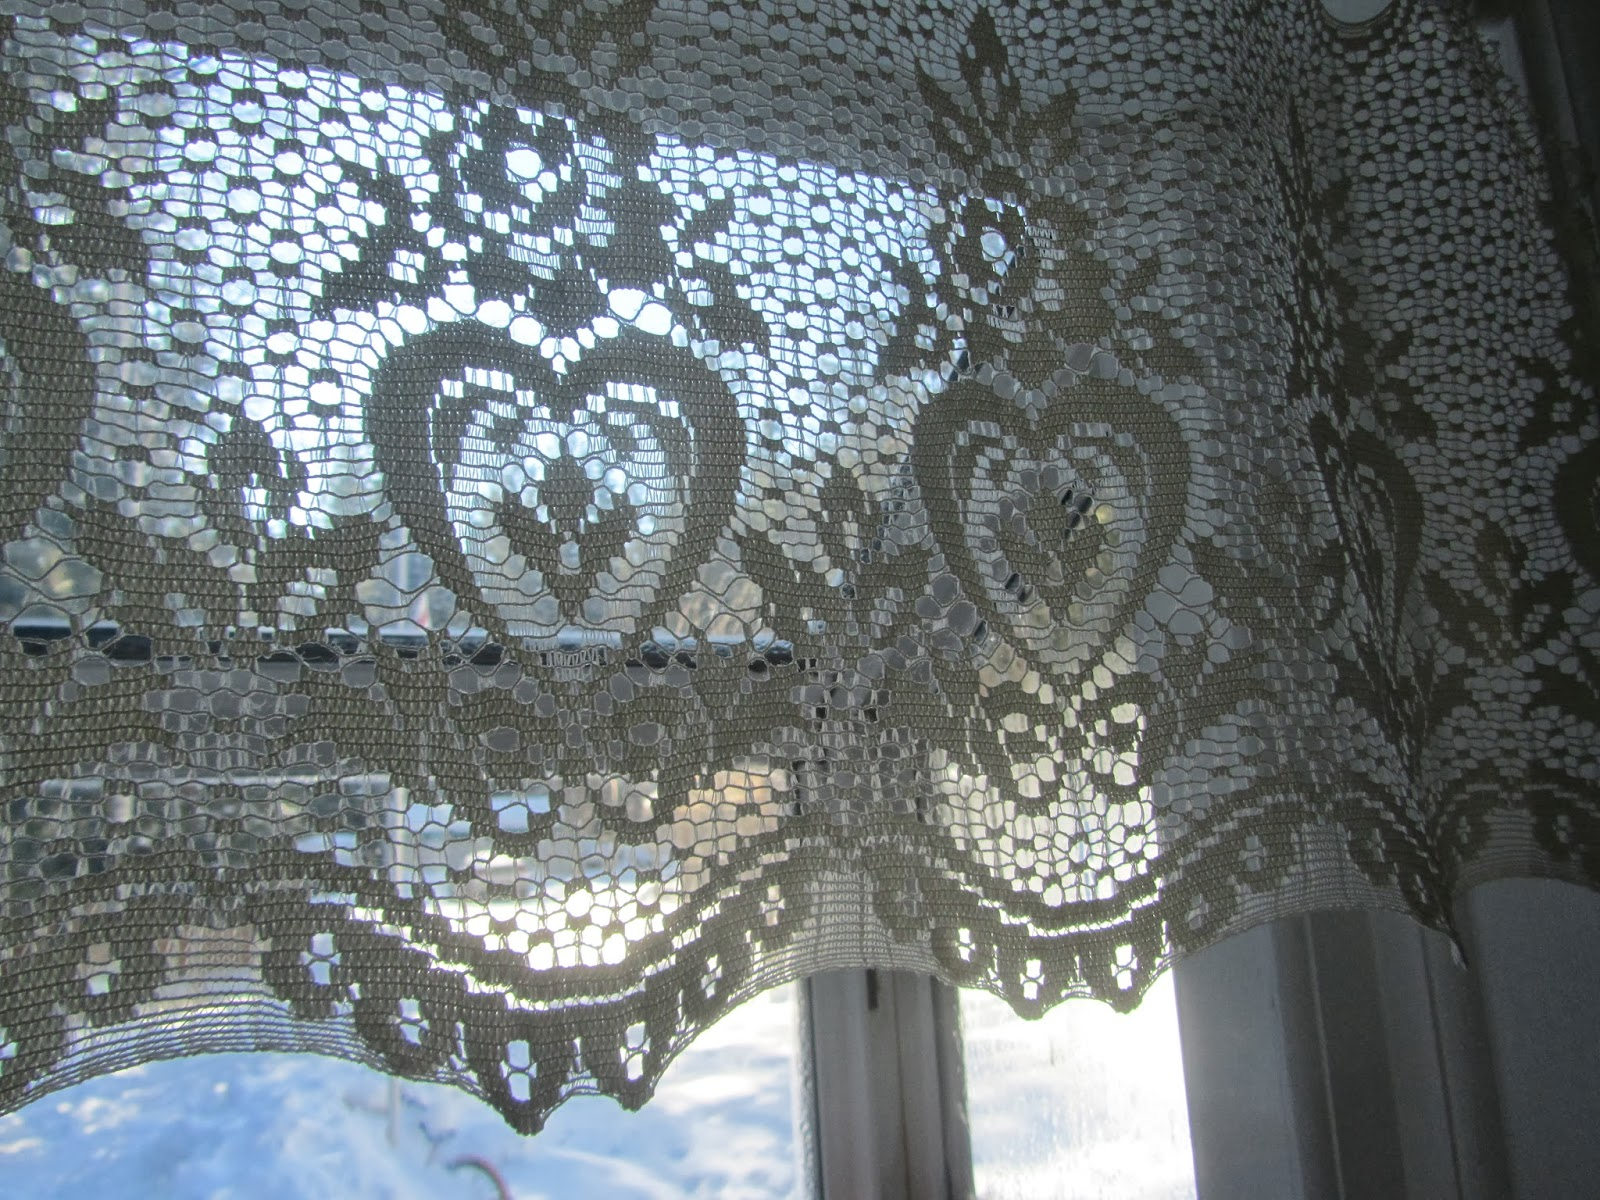 sun streaming through heart patterned lace curtains